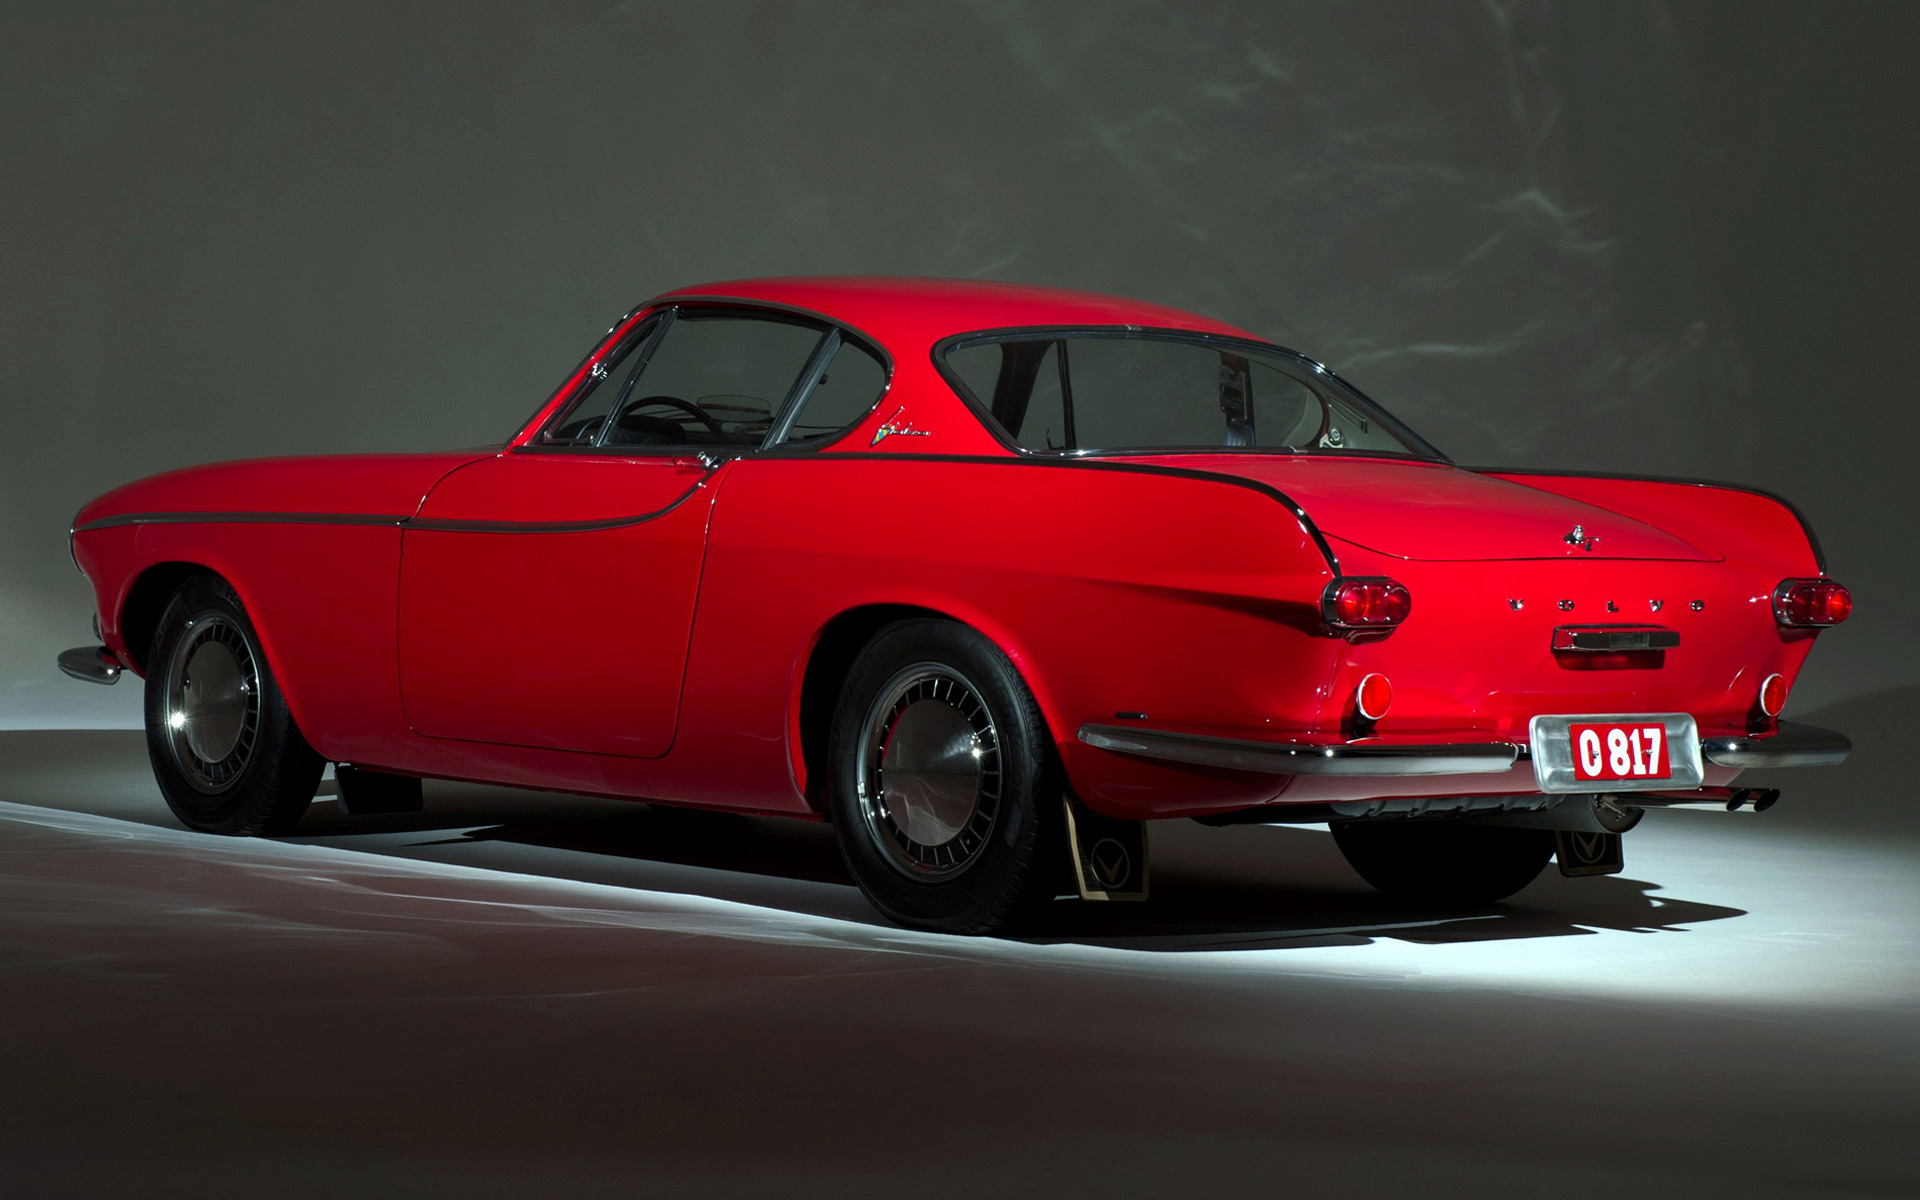 Volvo P1800 (1960) Wallpapers and HD Images - Car Pixel